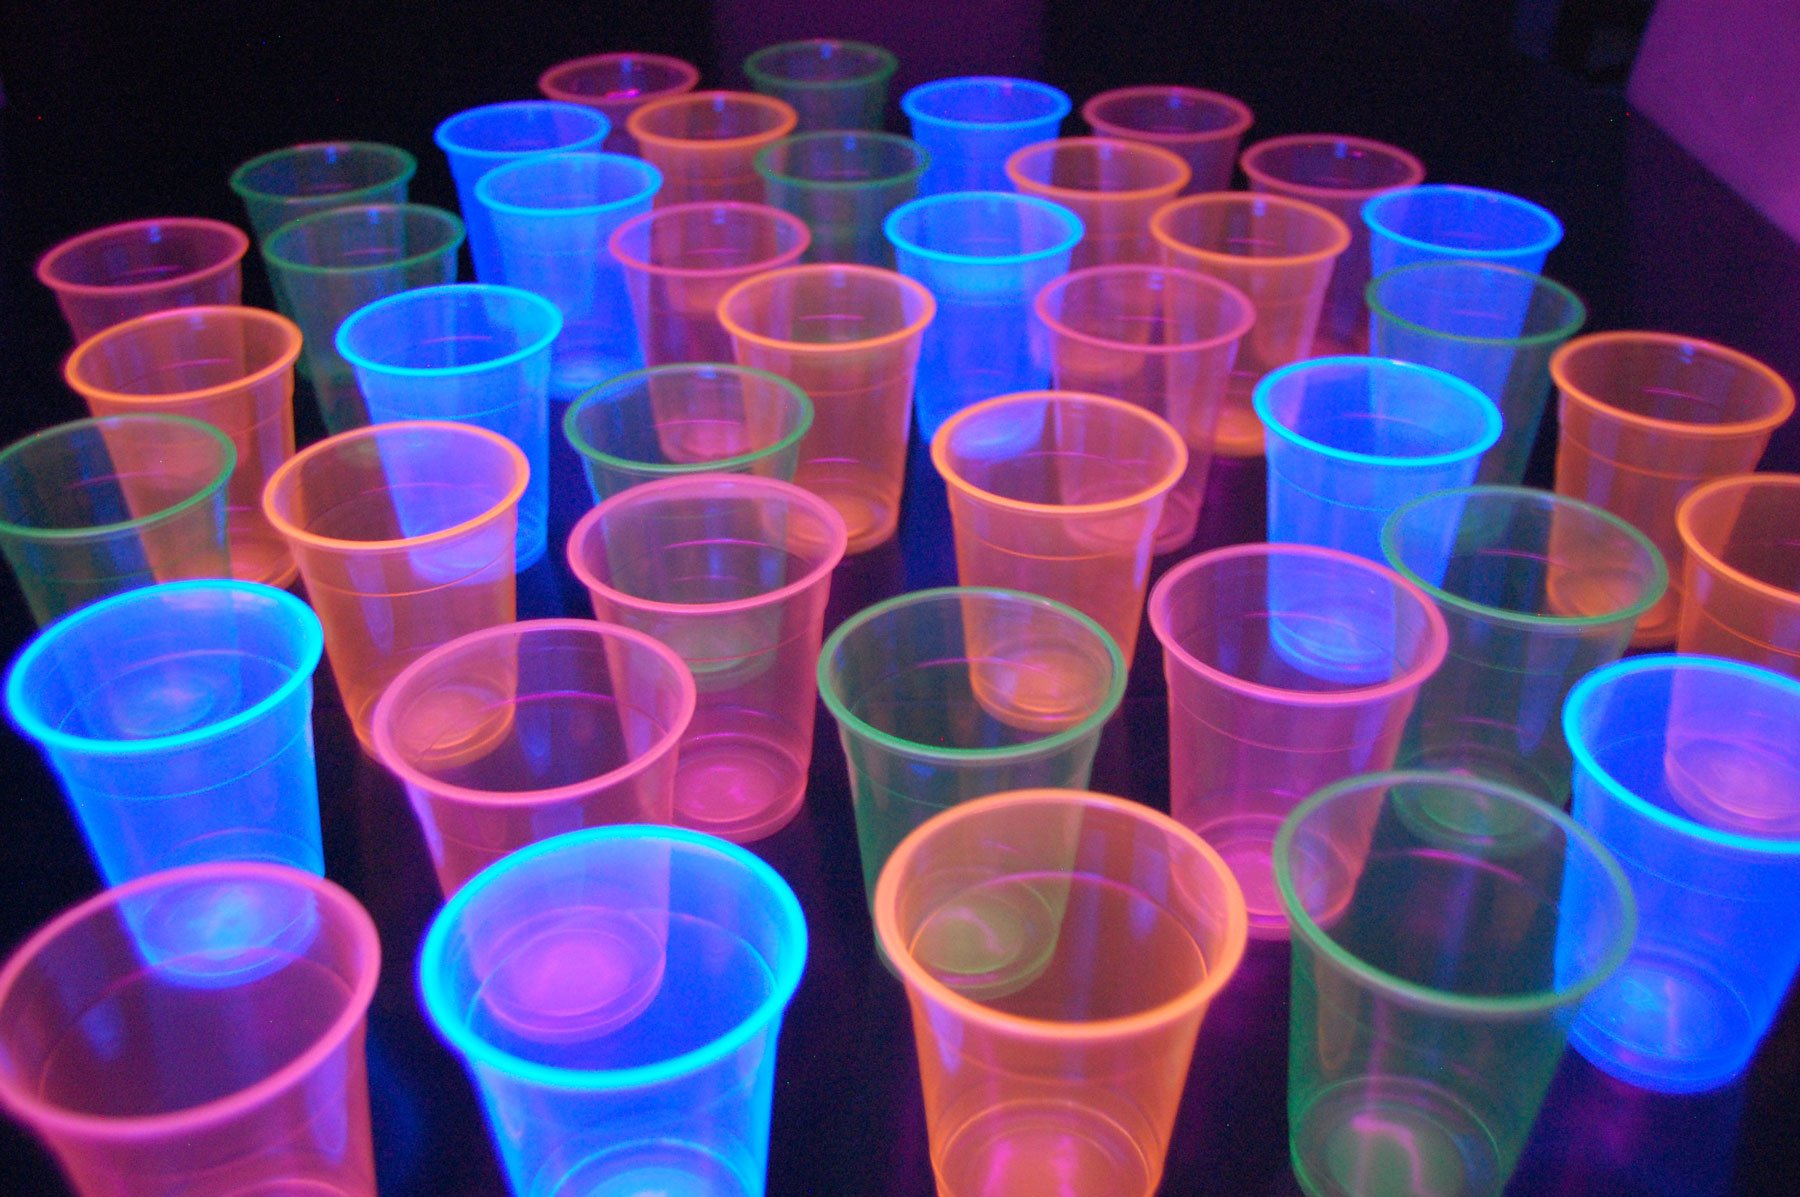 12oz Neon Assorted Blacklight Reactive Soft Plastic Cups with Free Blacklight Balloons (40) by DirectGlow LLC